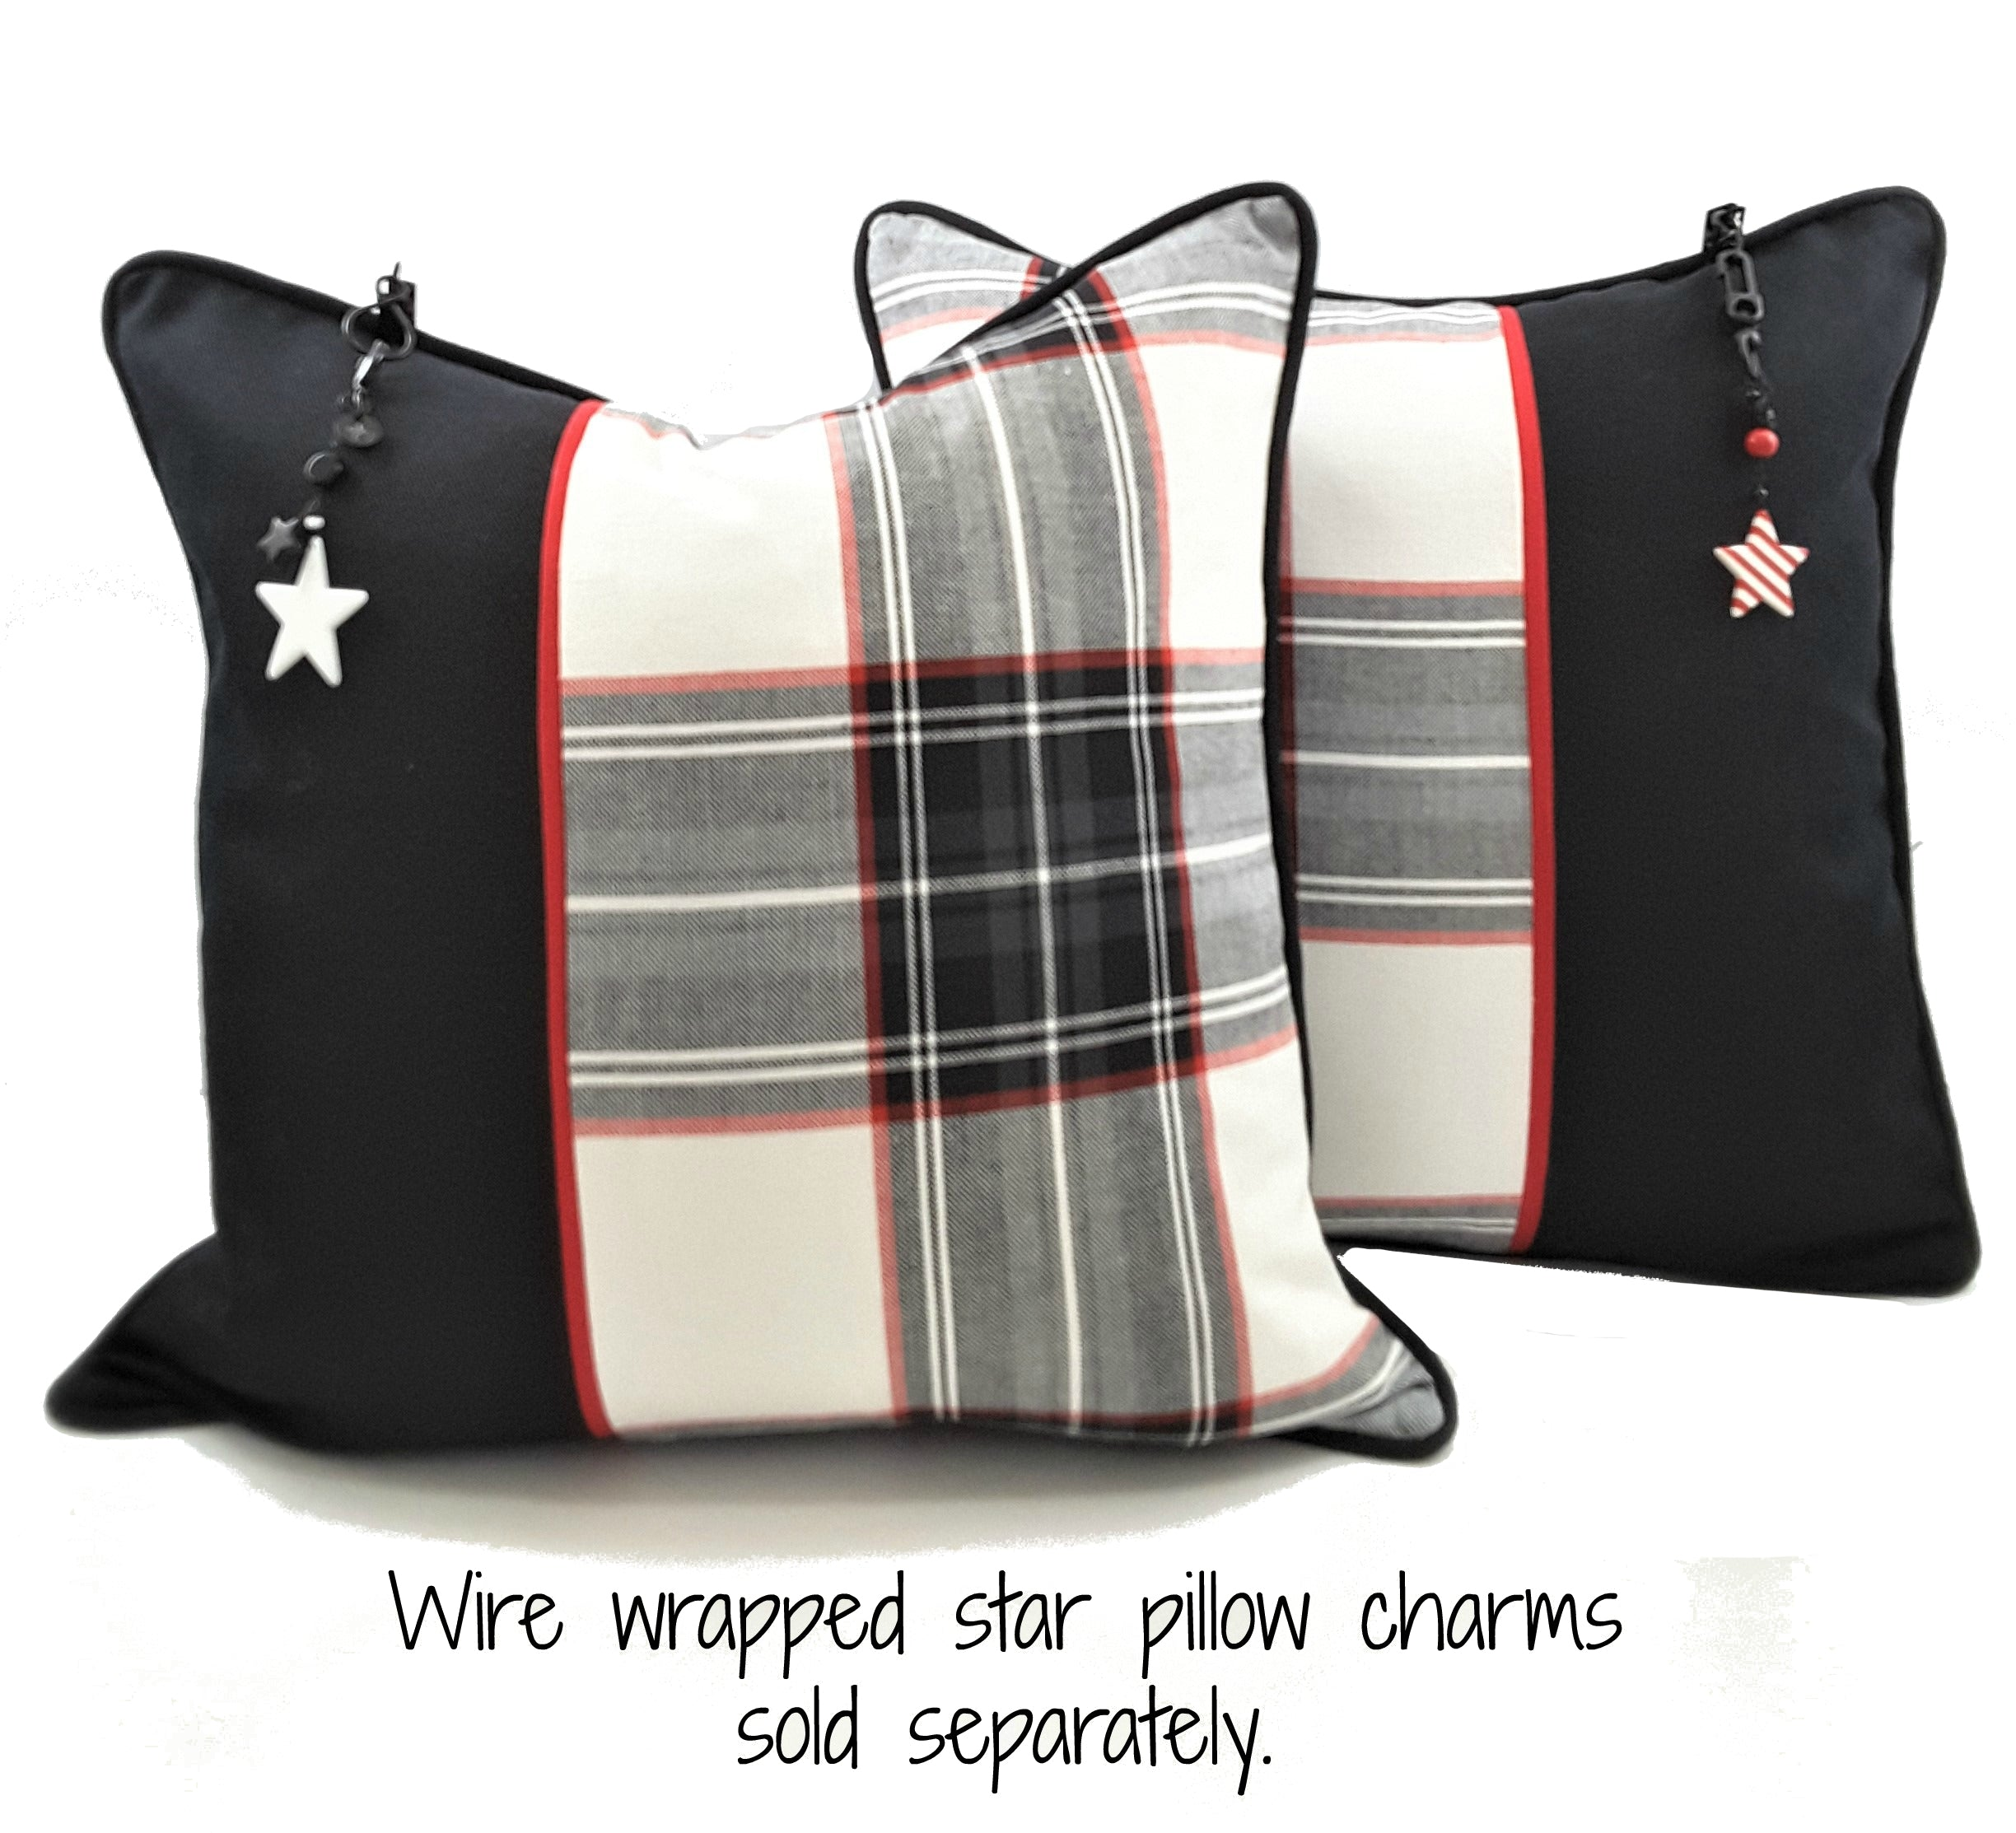 BLACK ACCENT WITH BLACK, WHITE & RED PLAID DENIM PILLOWS WITH CHARMS